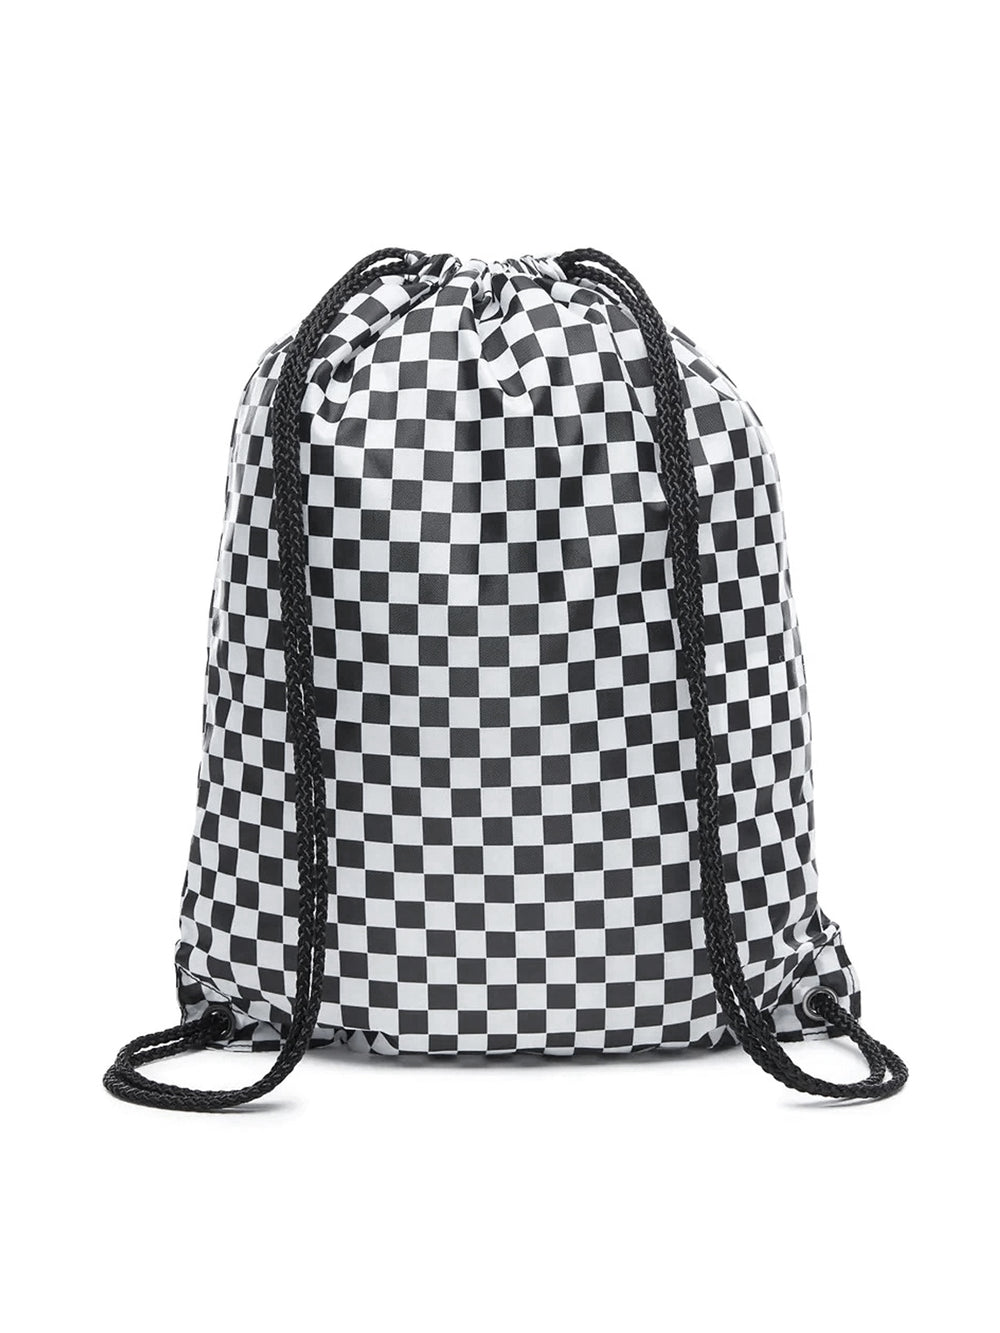 BENCHED BAG - CHECKER